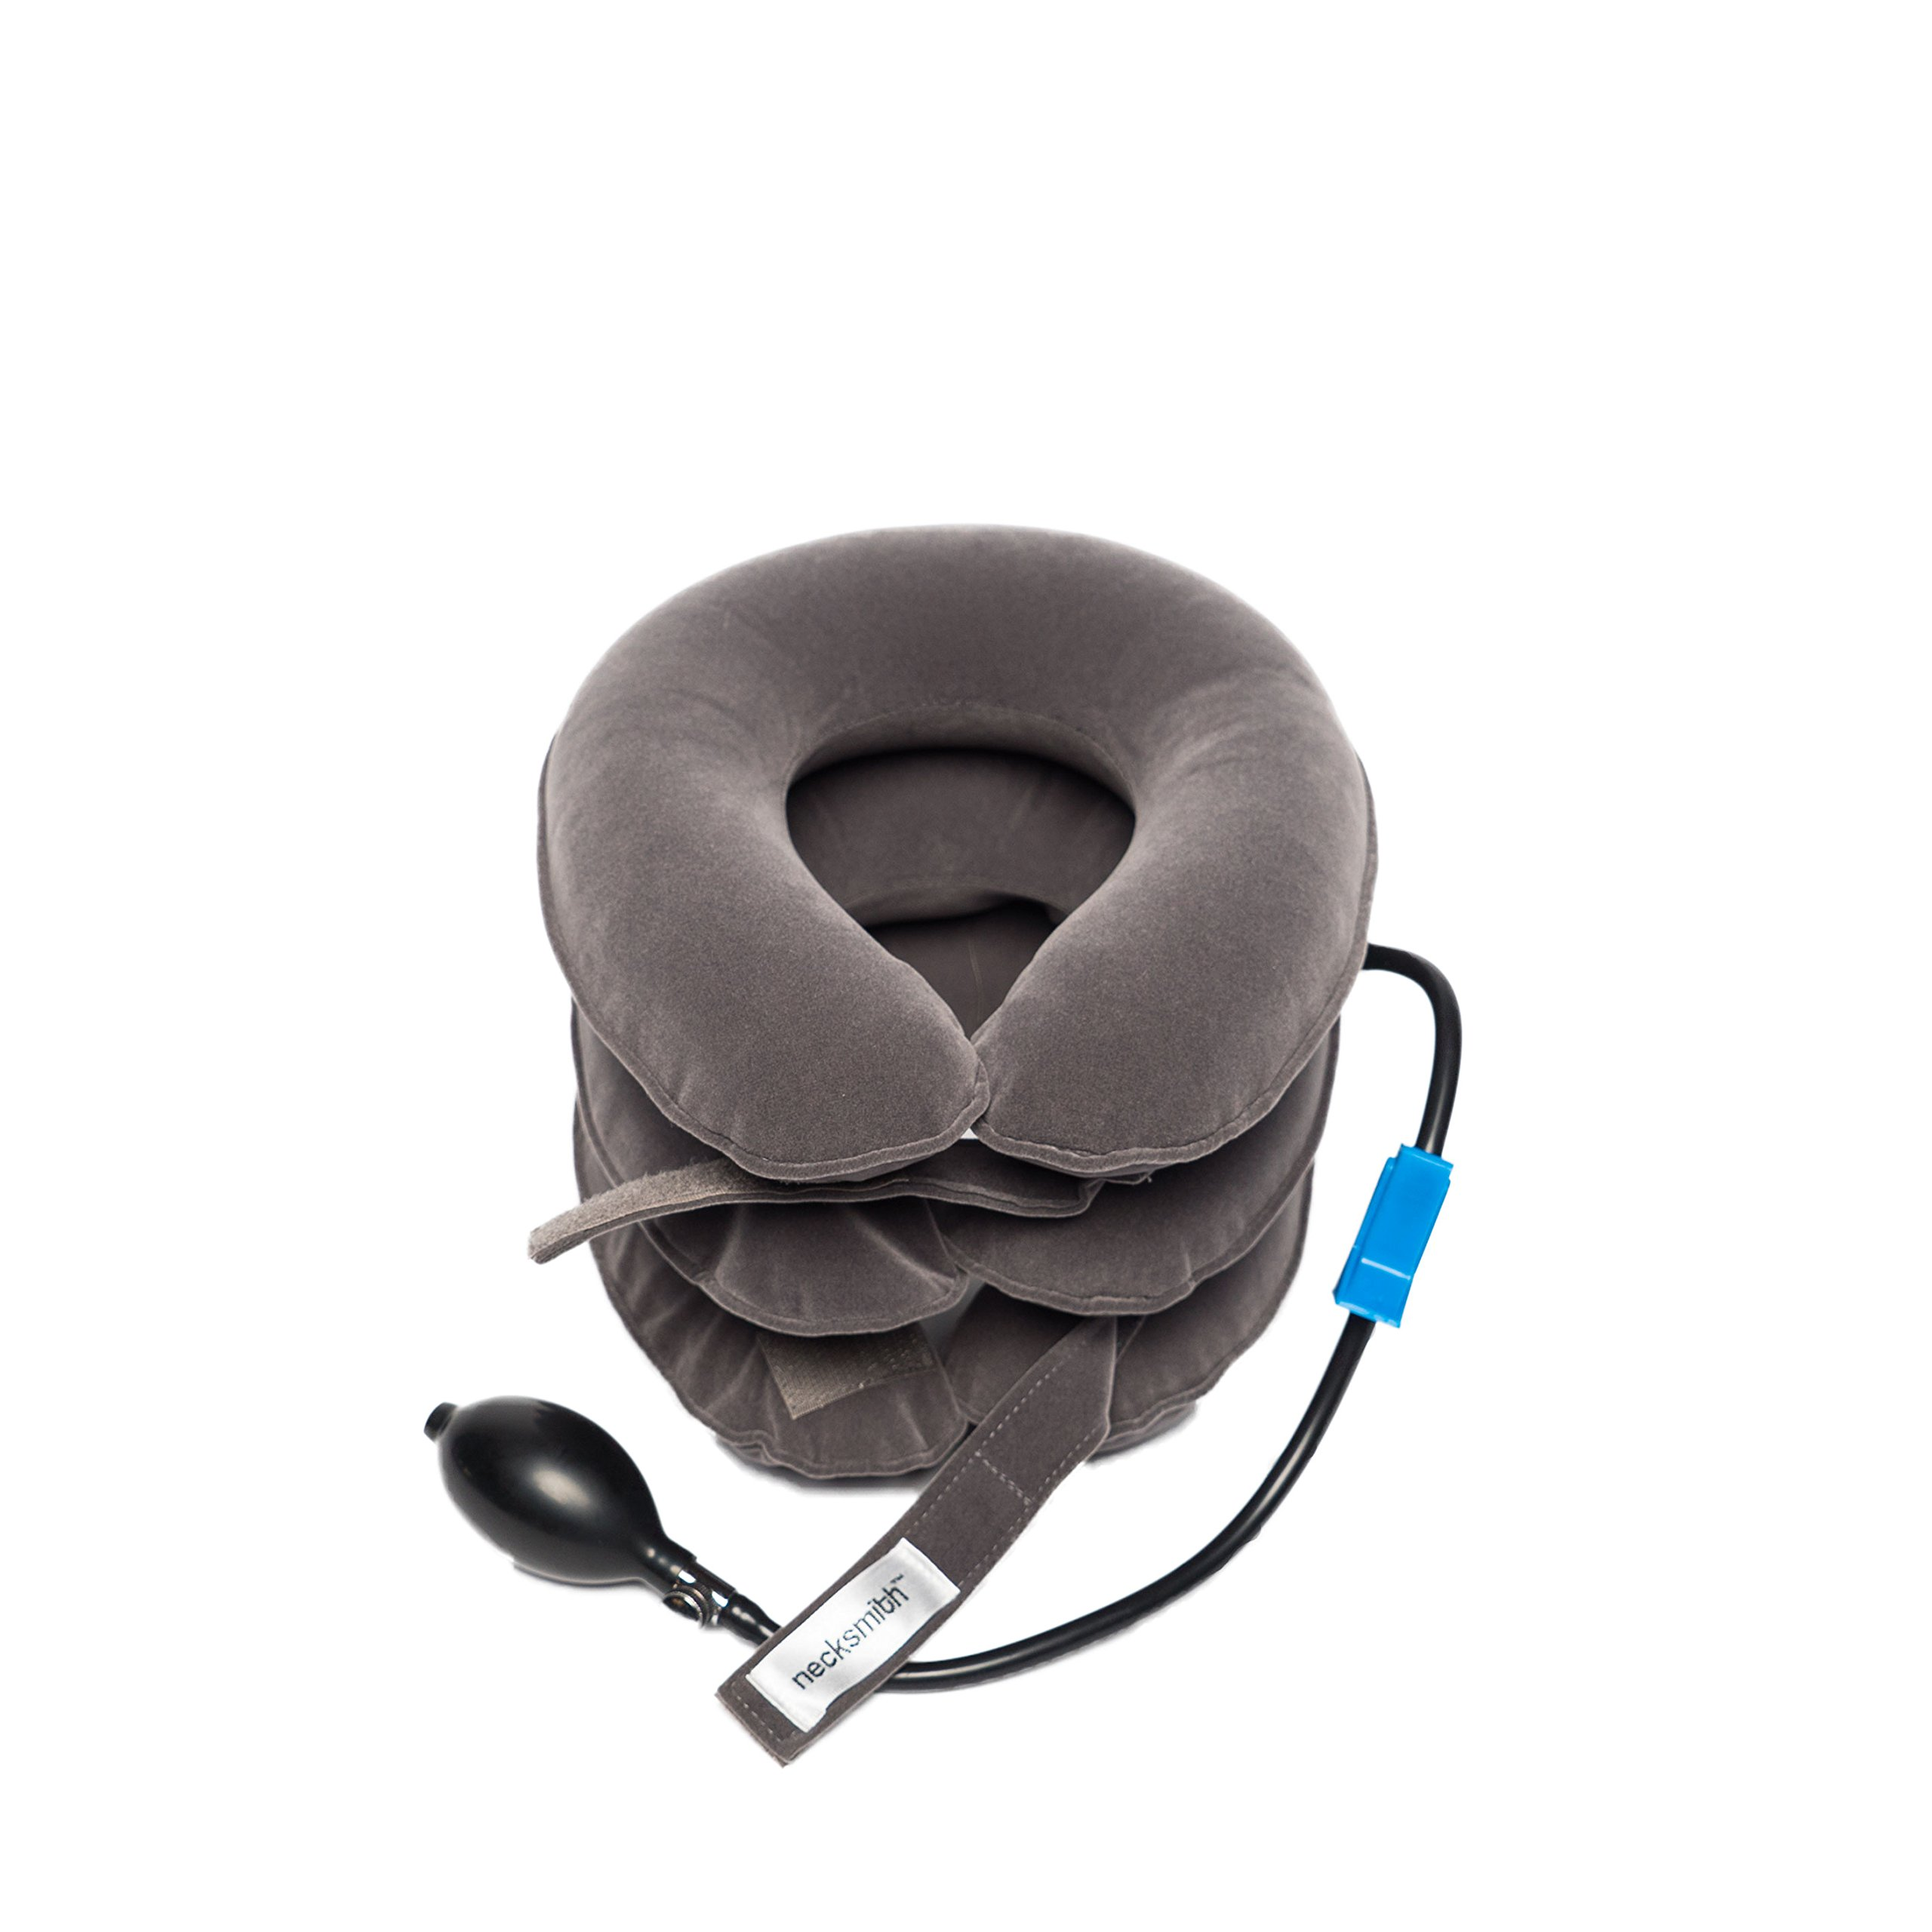 Necksmith™ Cervical Neck Traction Travel Pillow Device & Adjustable Neck Device Collar for Pain Relief and Support with FREE Neck Extensions by Necksmith (Image #4)